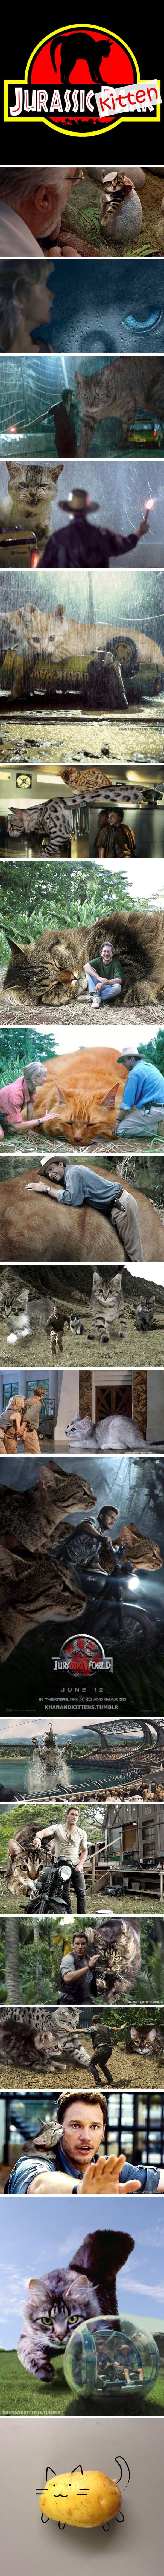 If Dinosaurs In Jurassic Park Franchise Were Fluffy, Vicious Cats